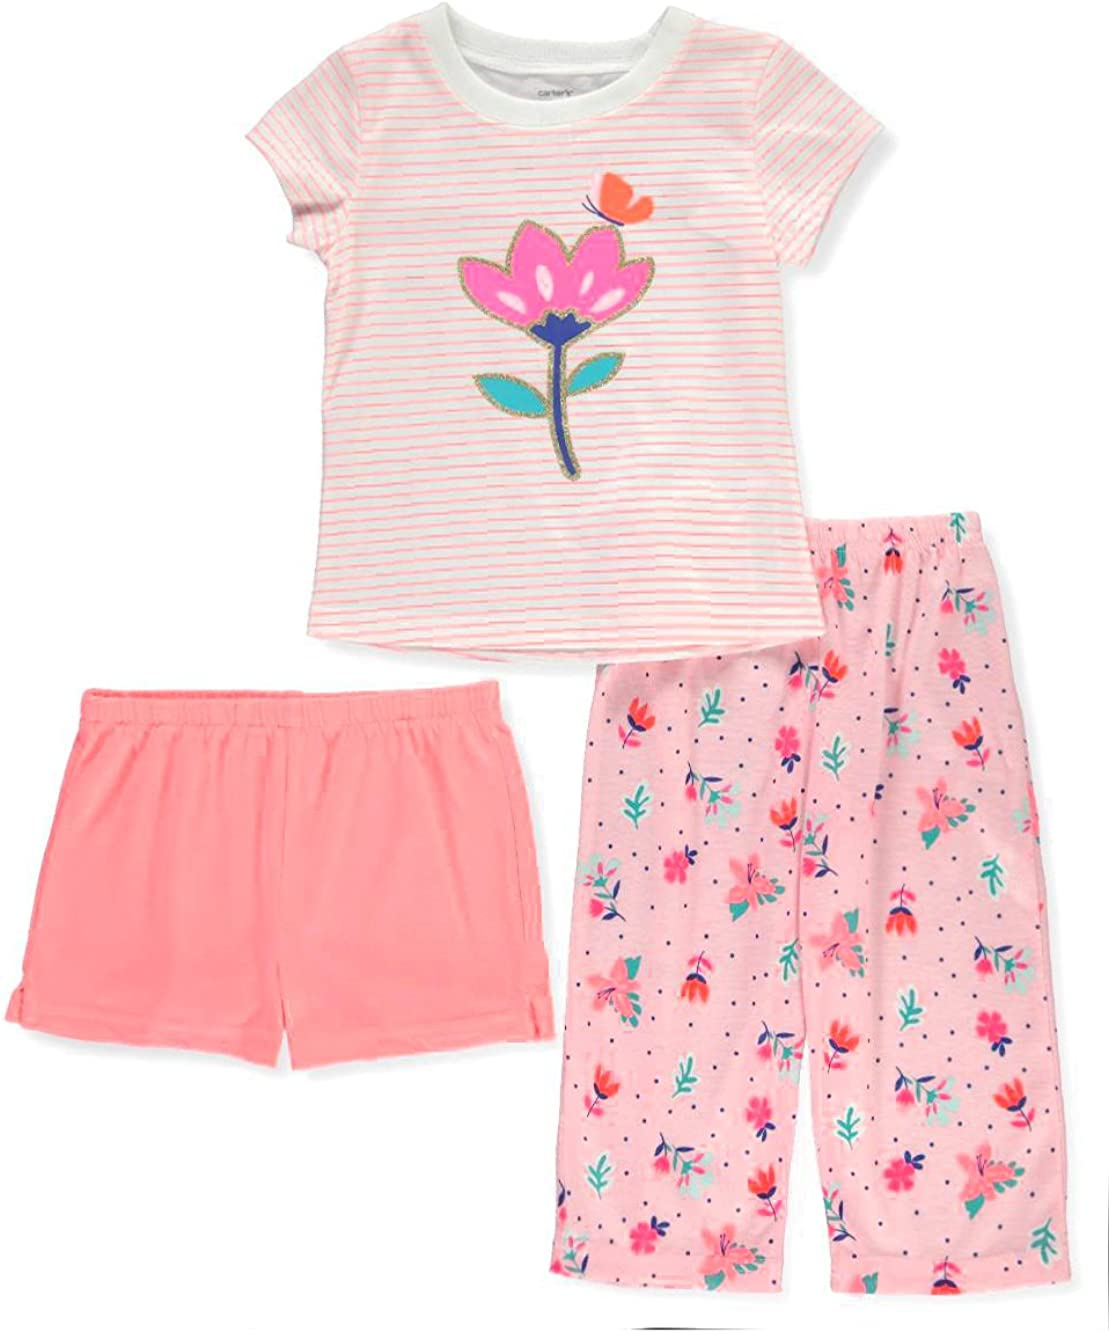 Carters Baby Girls 3-Pc Floral Pajama Set 18 Months